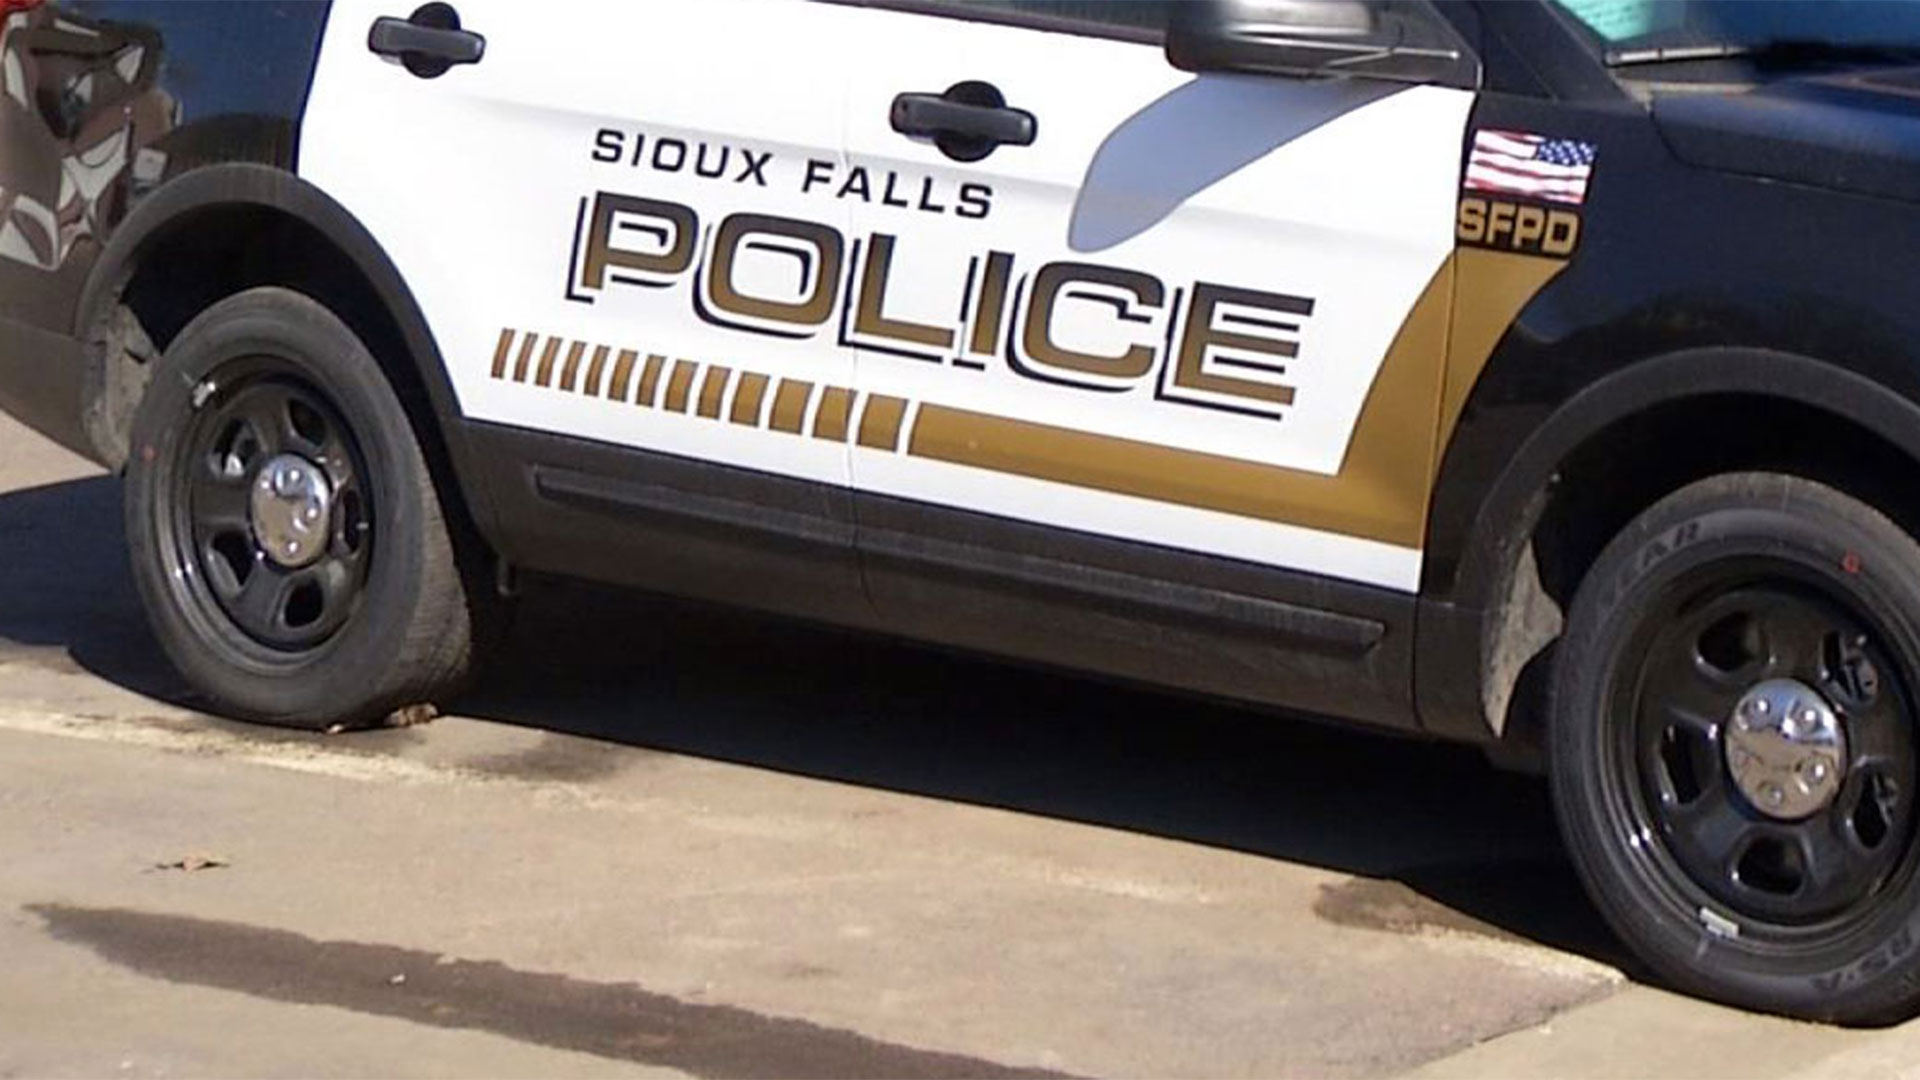 KELO Sioux Falls police vehicle crime